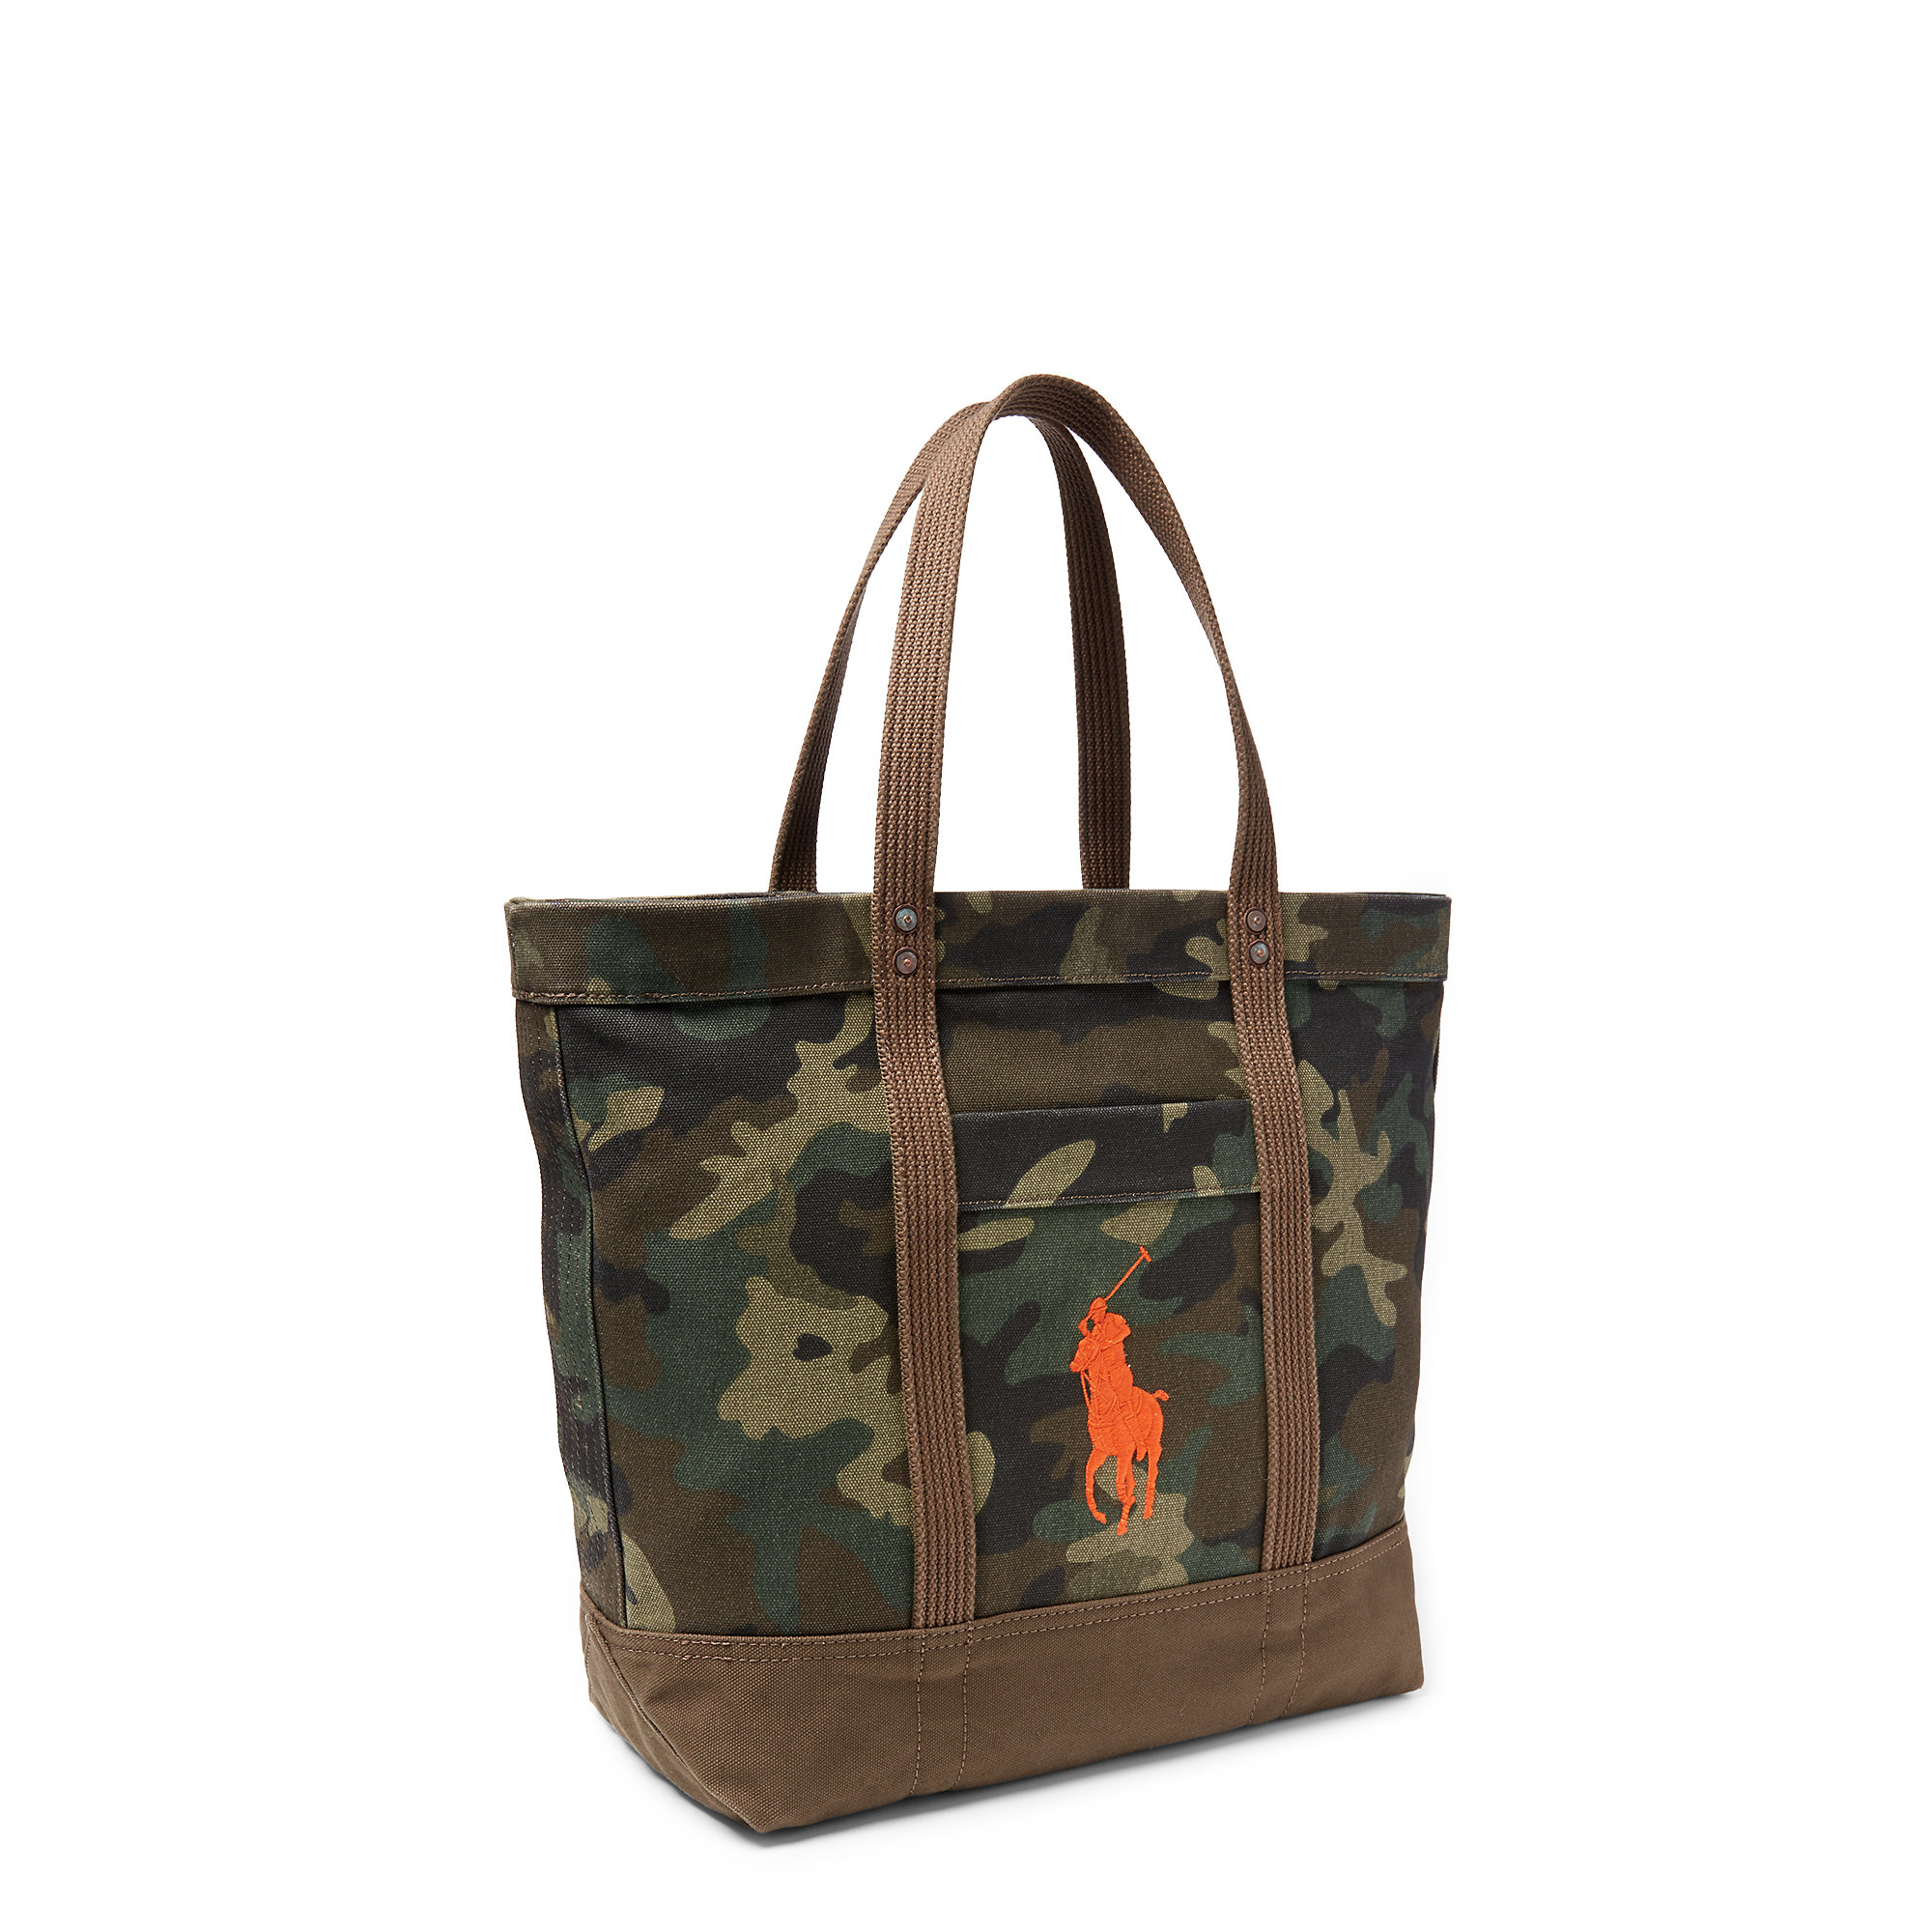 30d58a2af1 Lyst - Polo Ralph Lauren Big Pony Camouflage Tote in Green